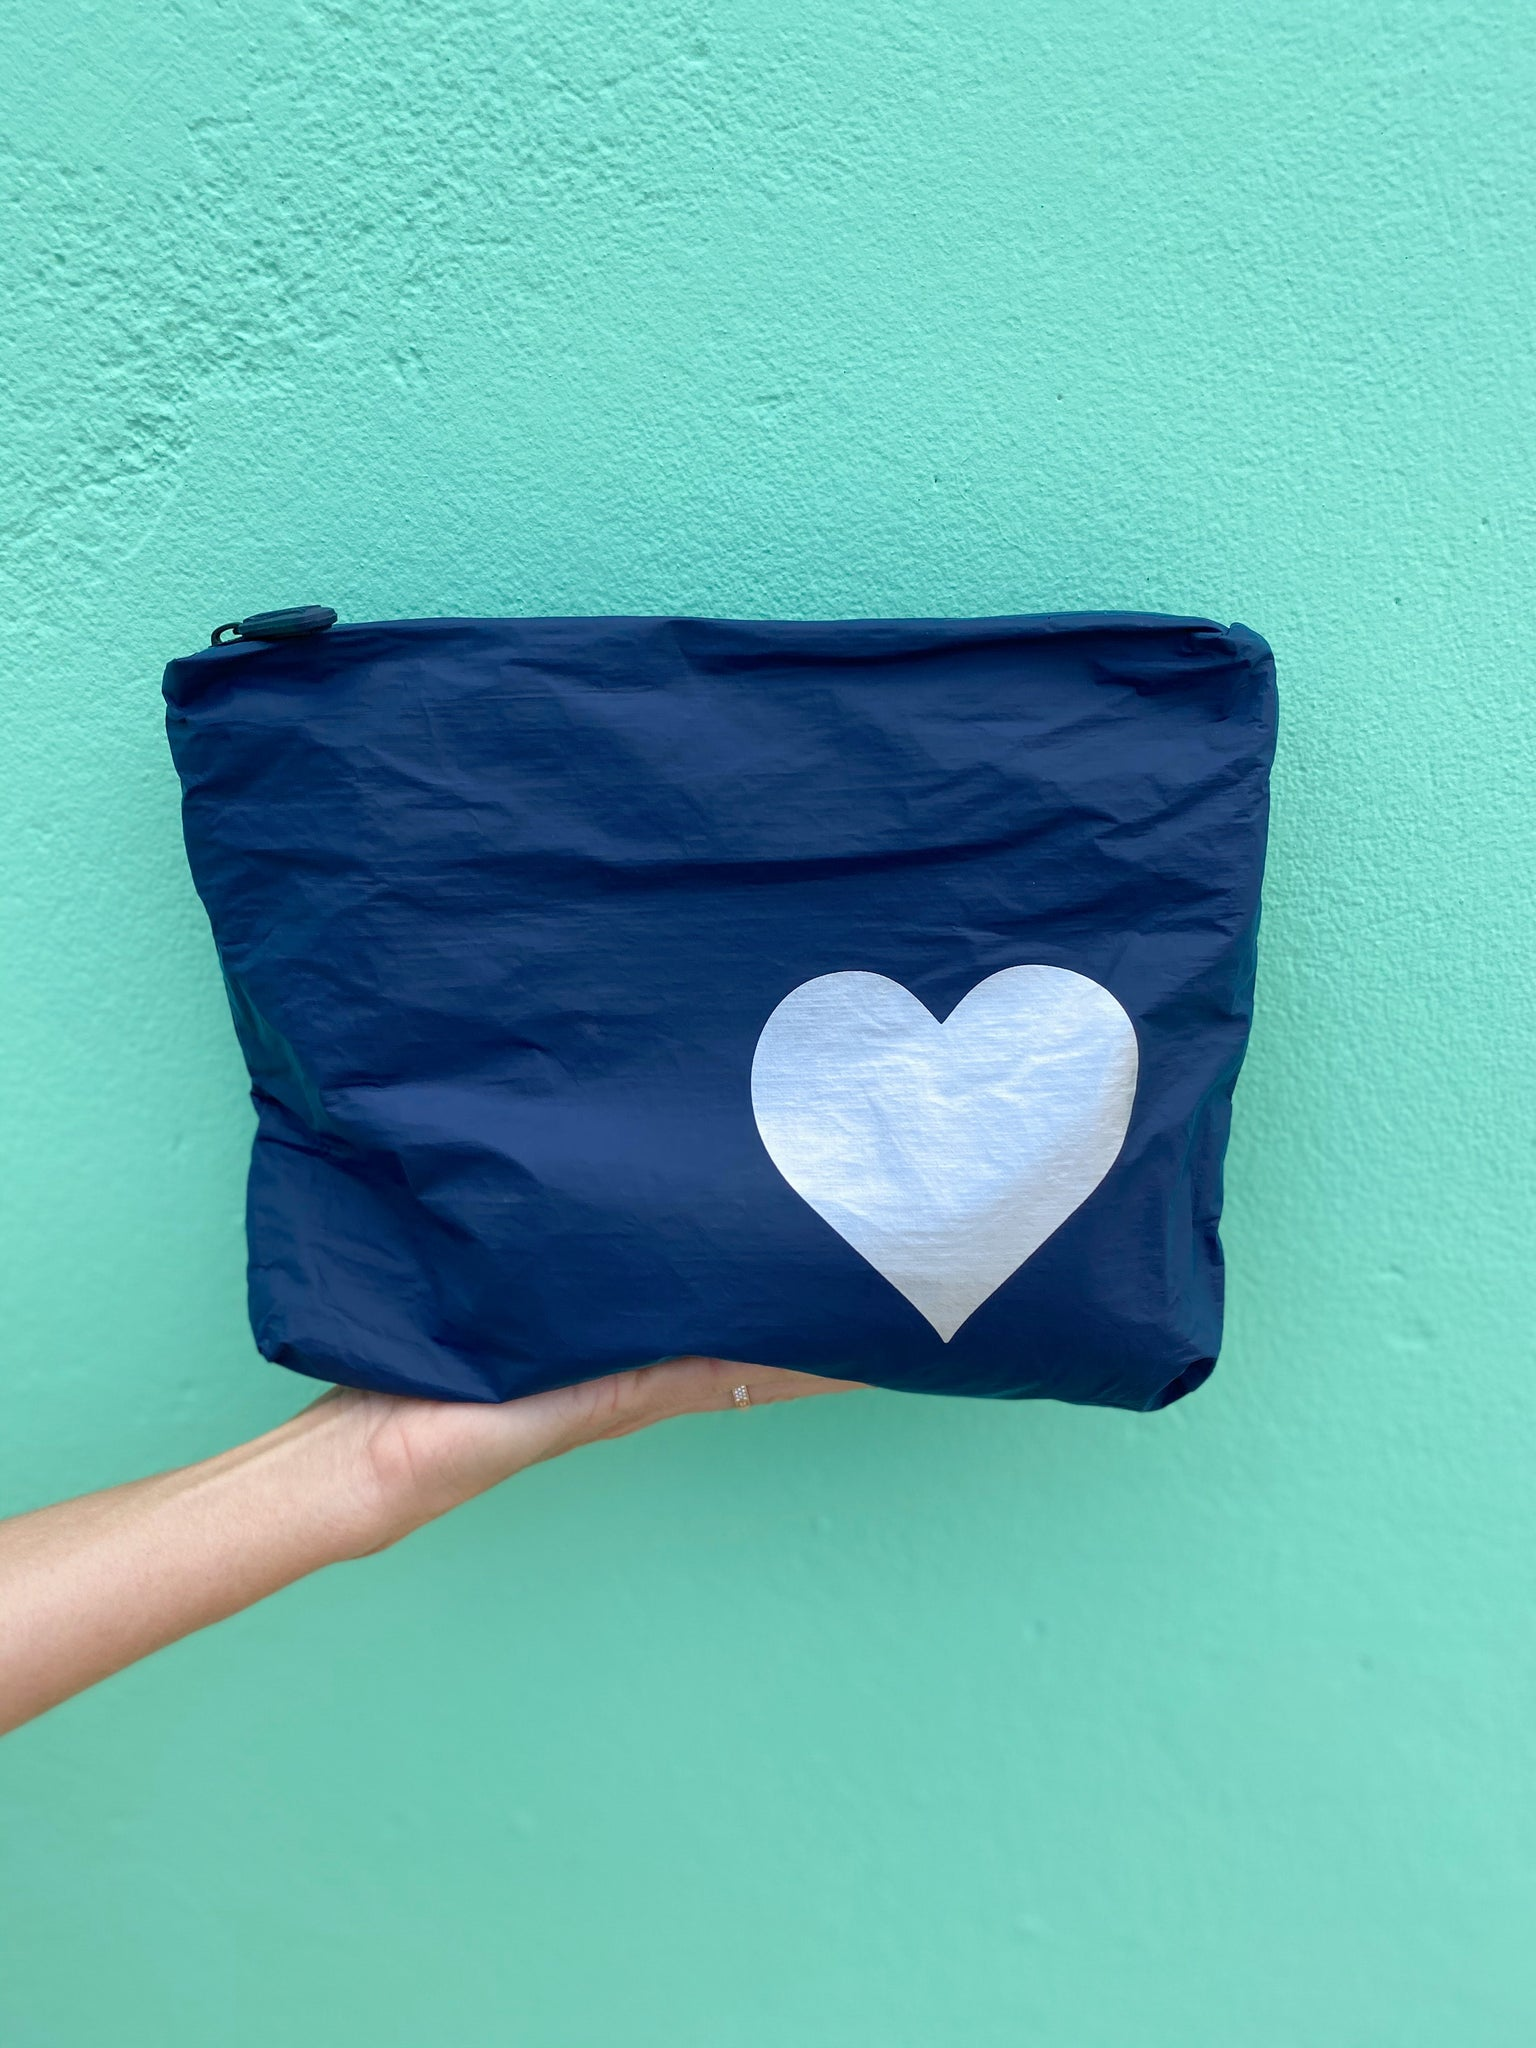 Makeup Pouch - Travel Pack - Toiletry Bag - Medium Pack - Navy with Metallic Silver Heart